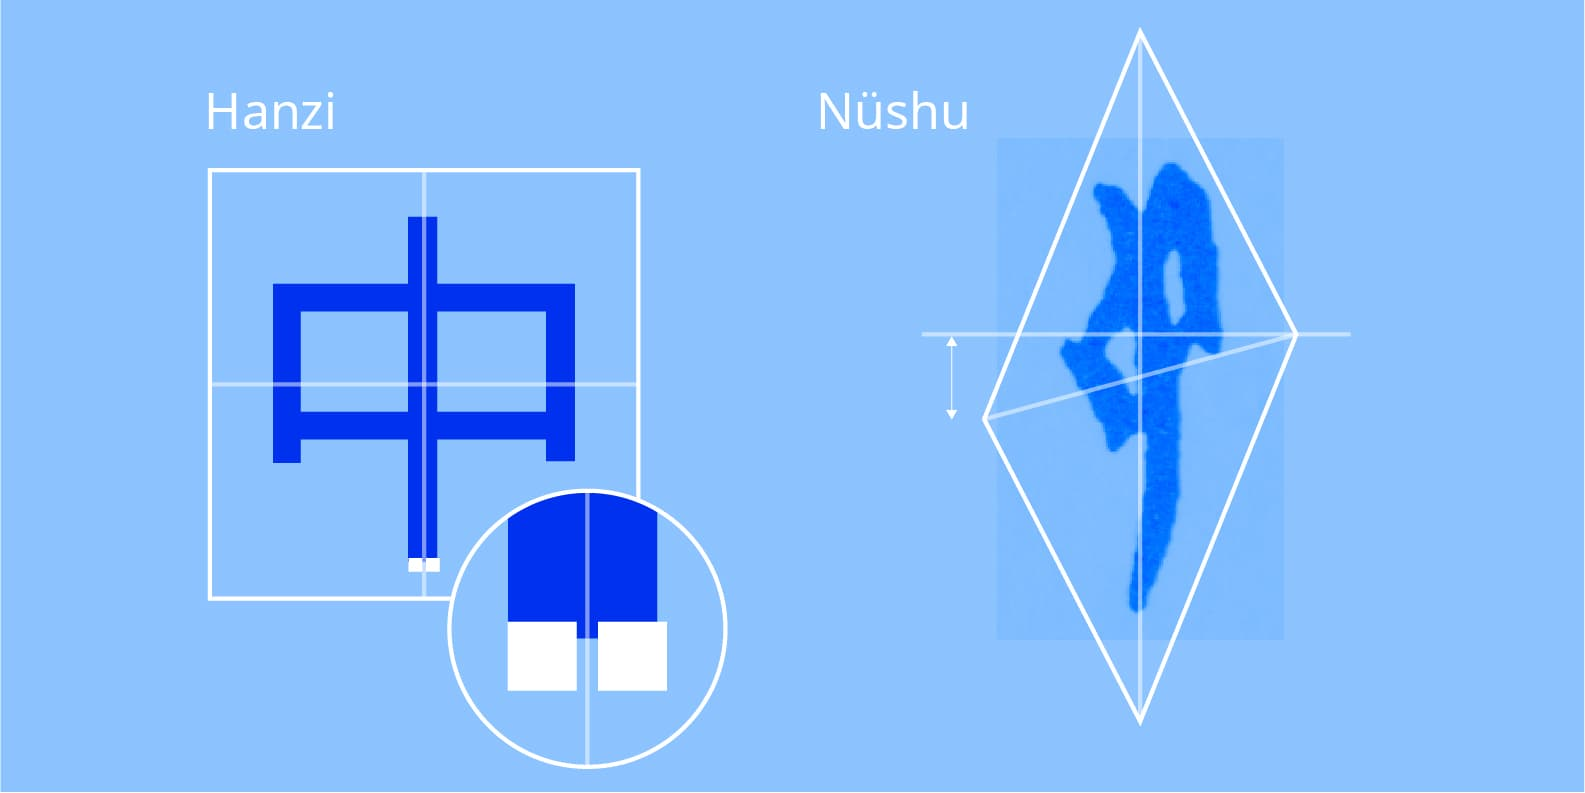 Hanzi and Nüshu frame shapes and left-right balance